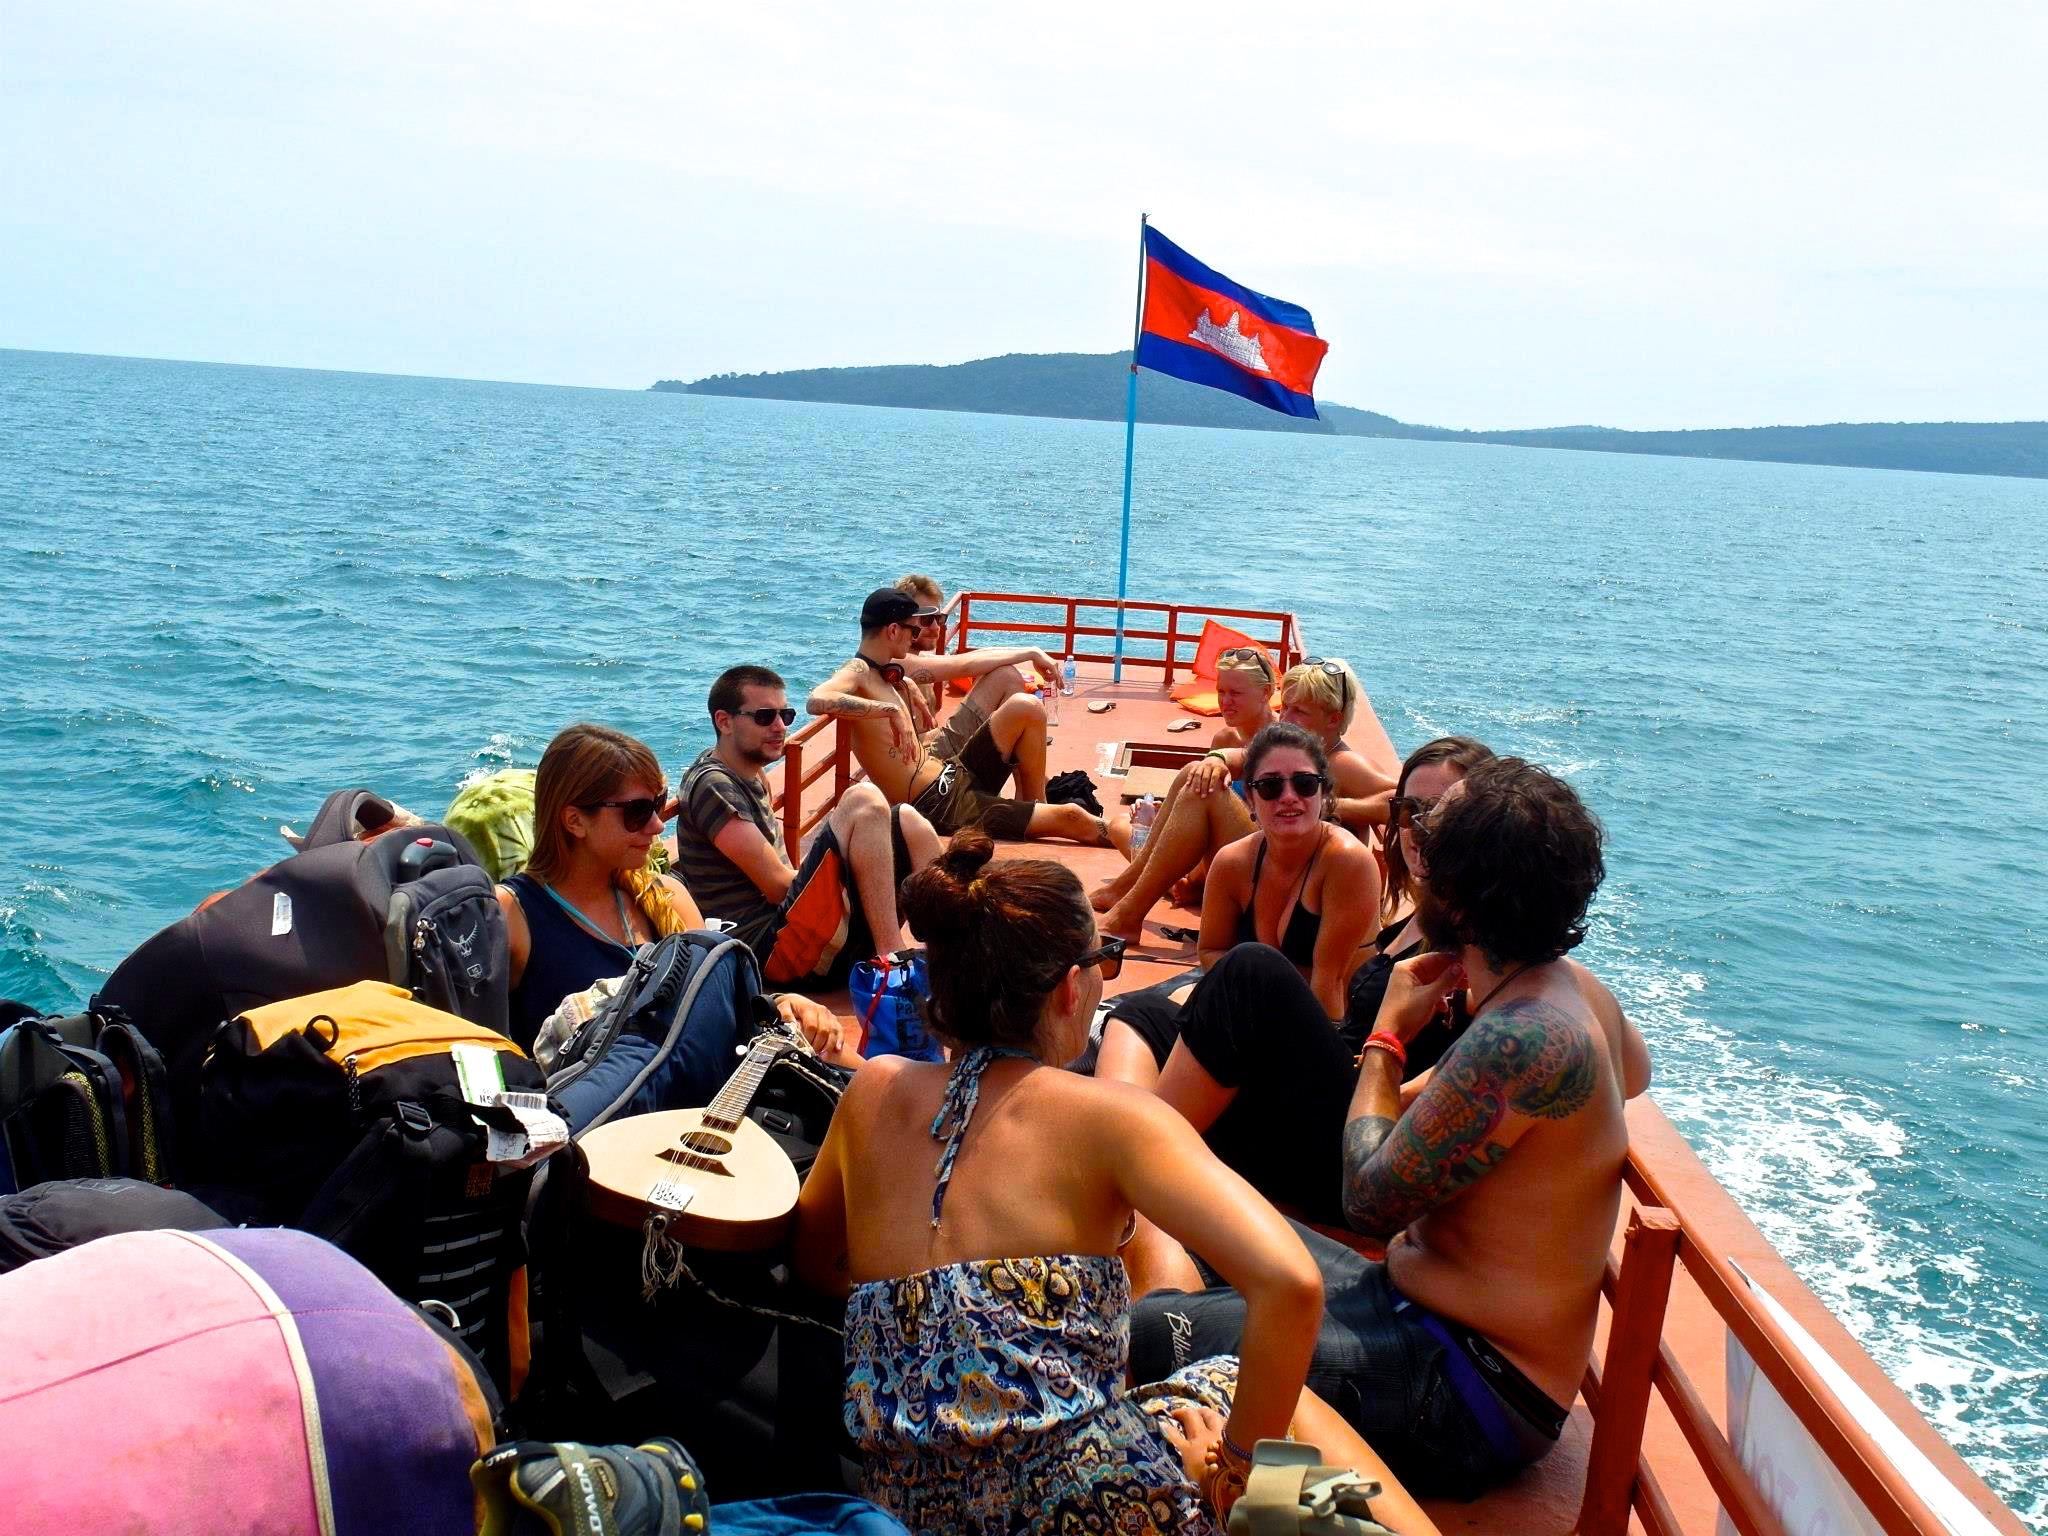 Backpacker life - on the boat to Koh Rong